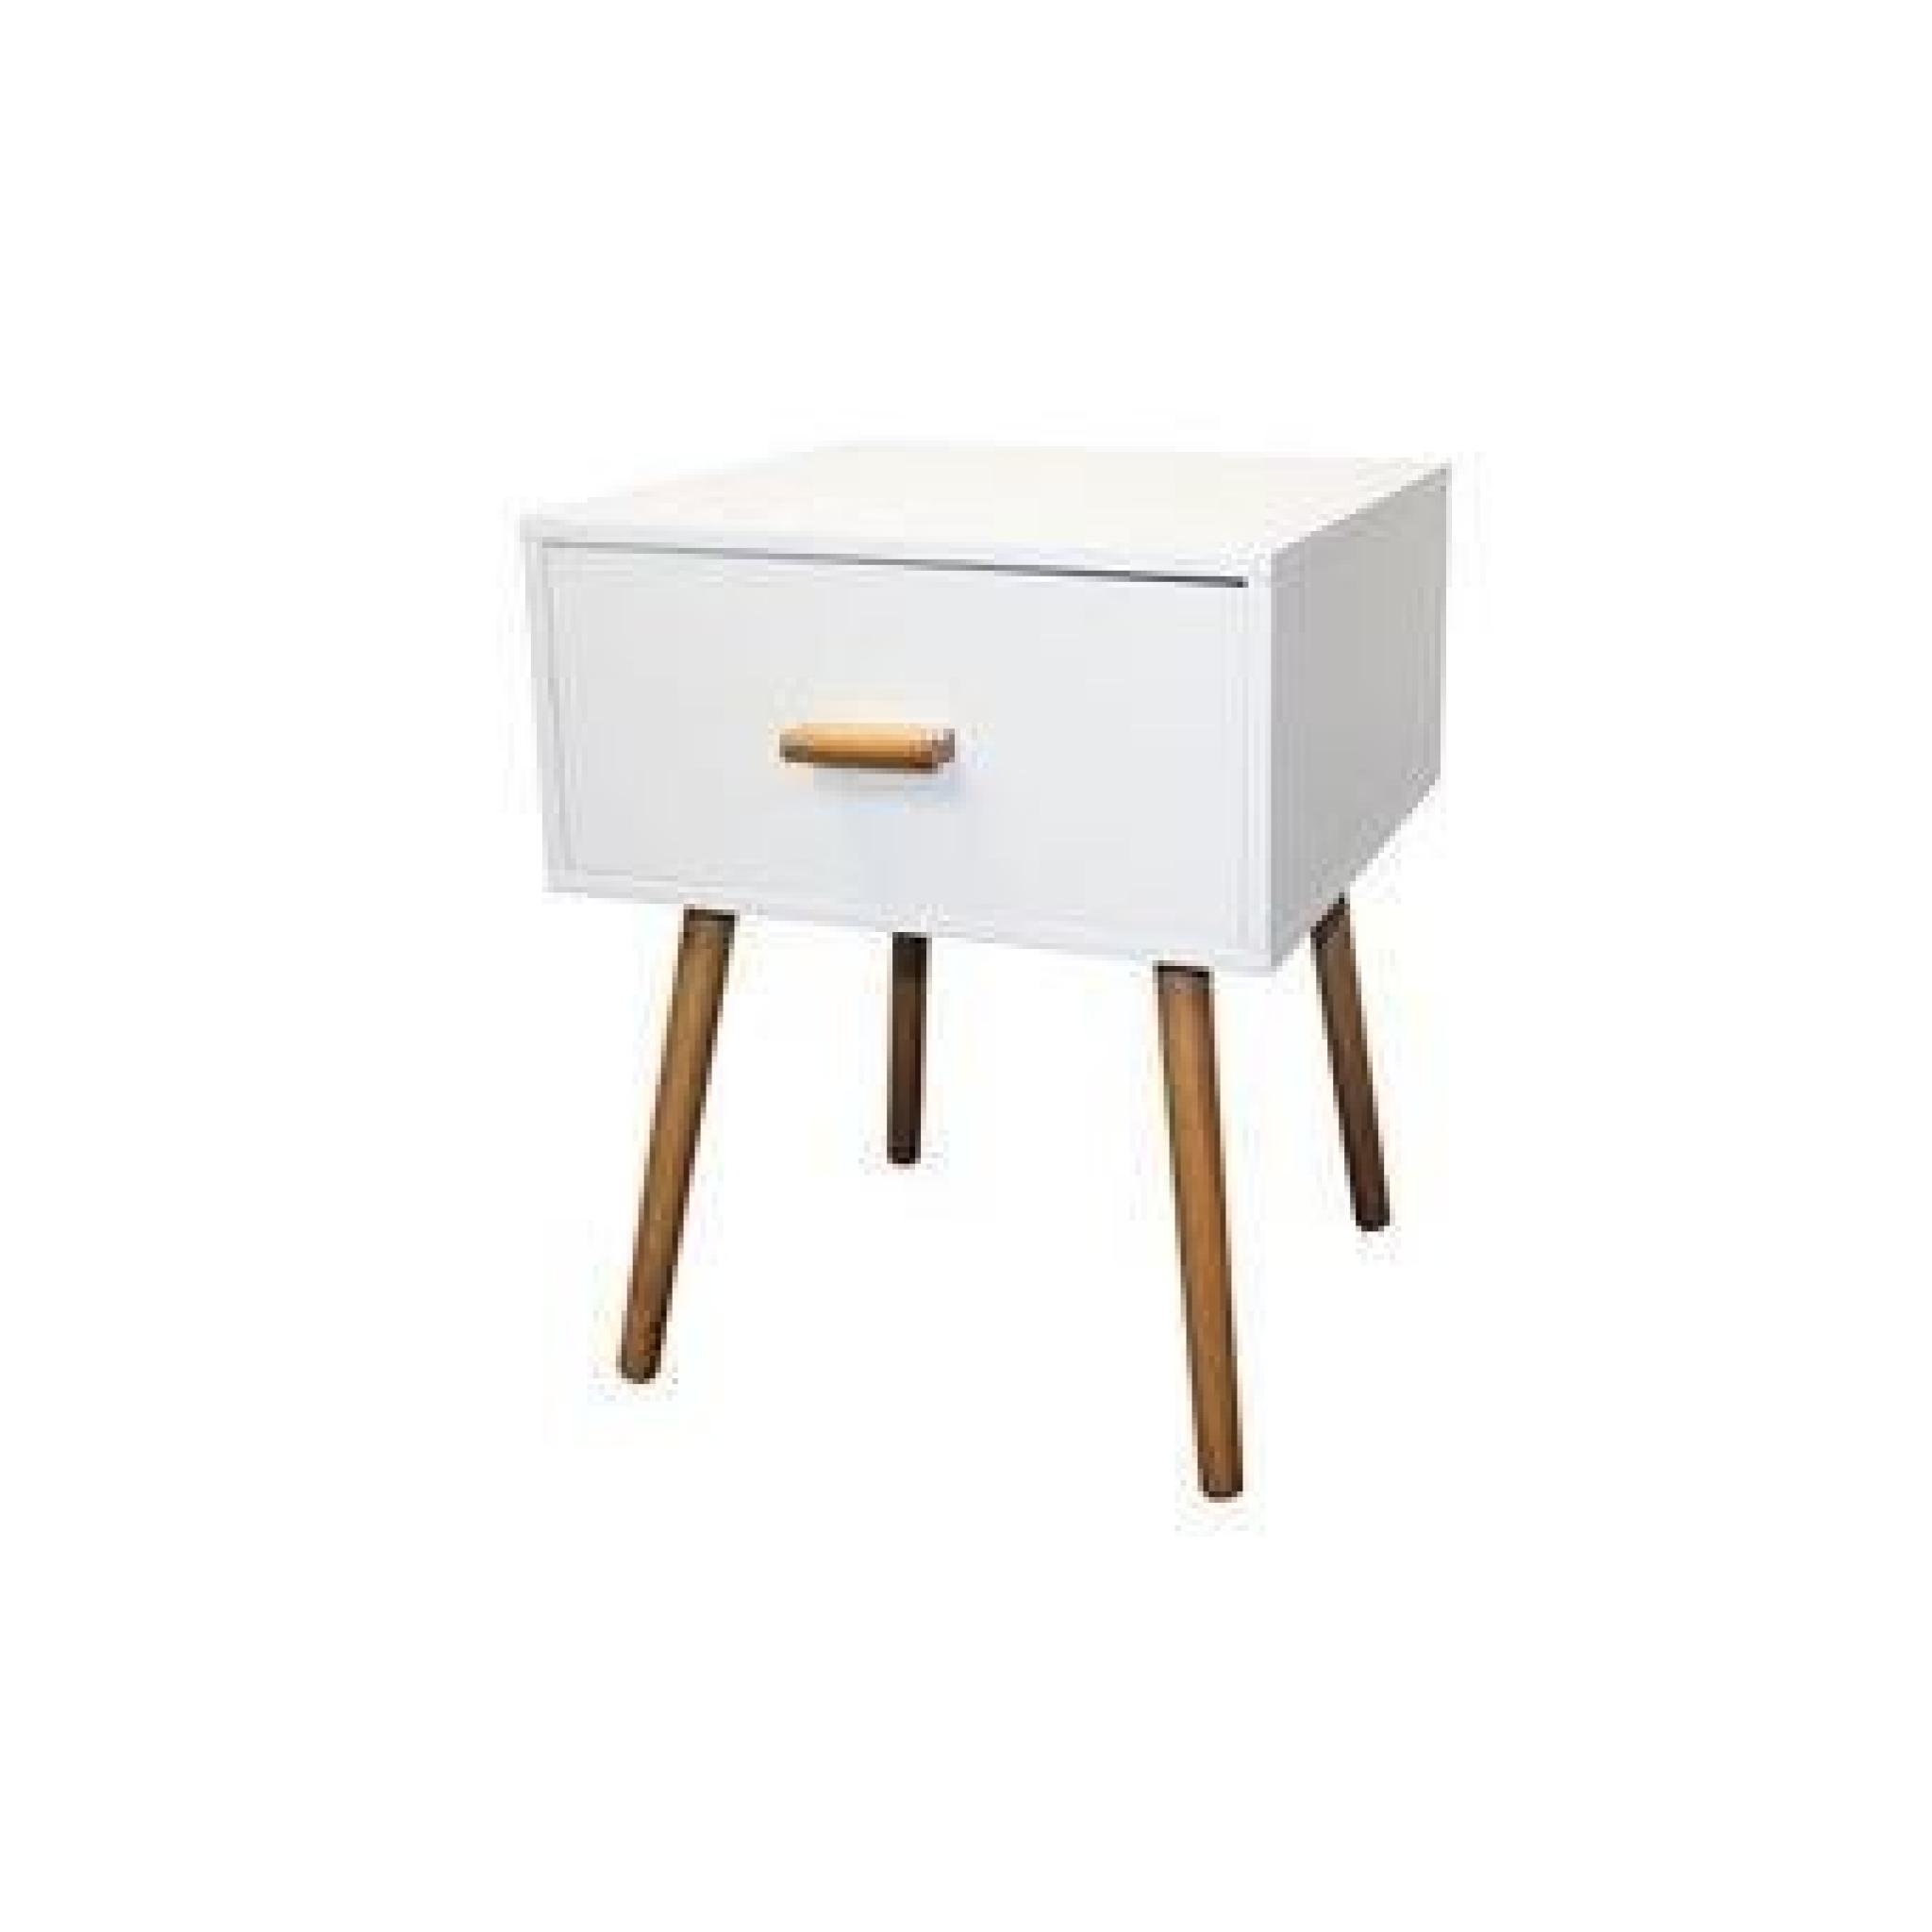 Table de chevet blanc design scandinave achat vente for Tables scandinaves pas cher